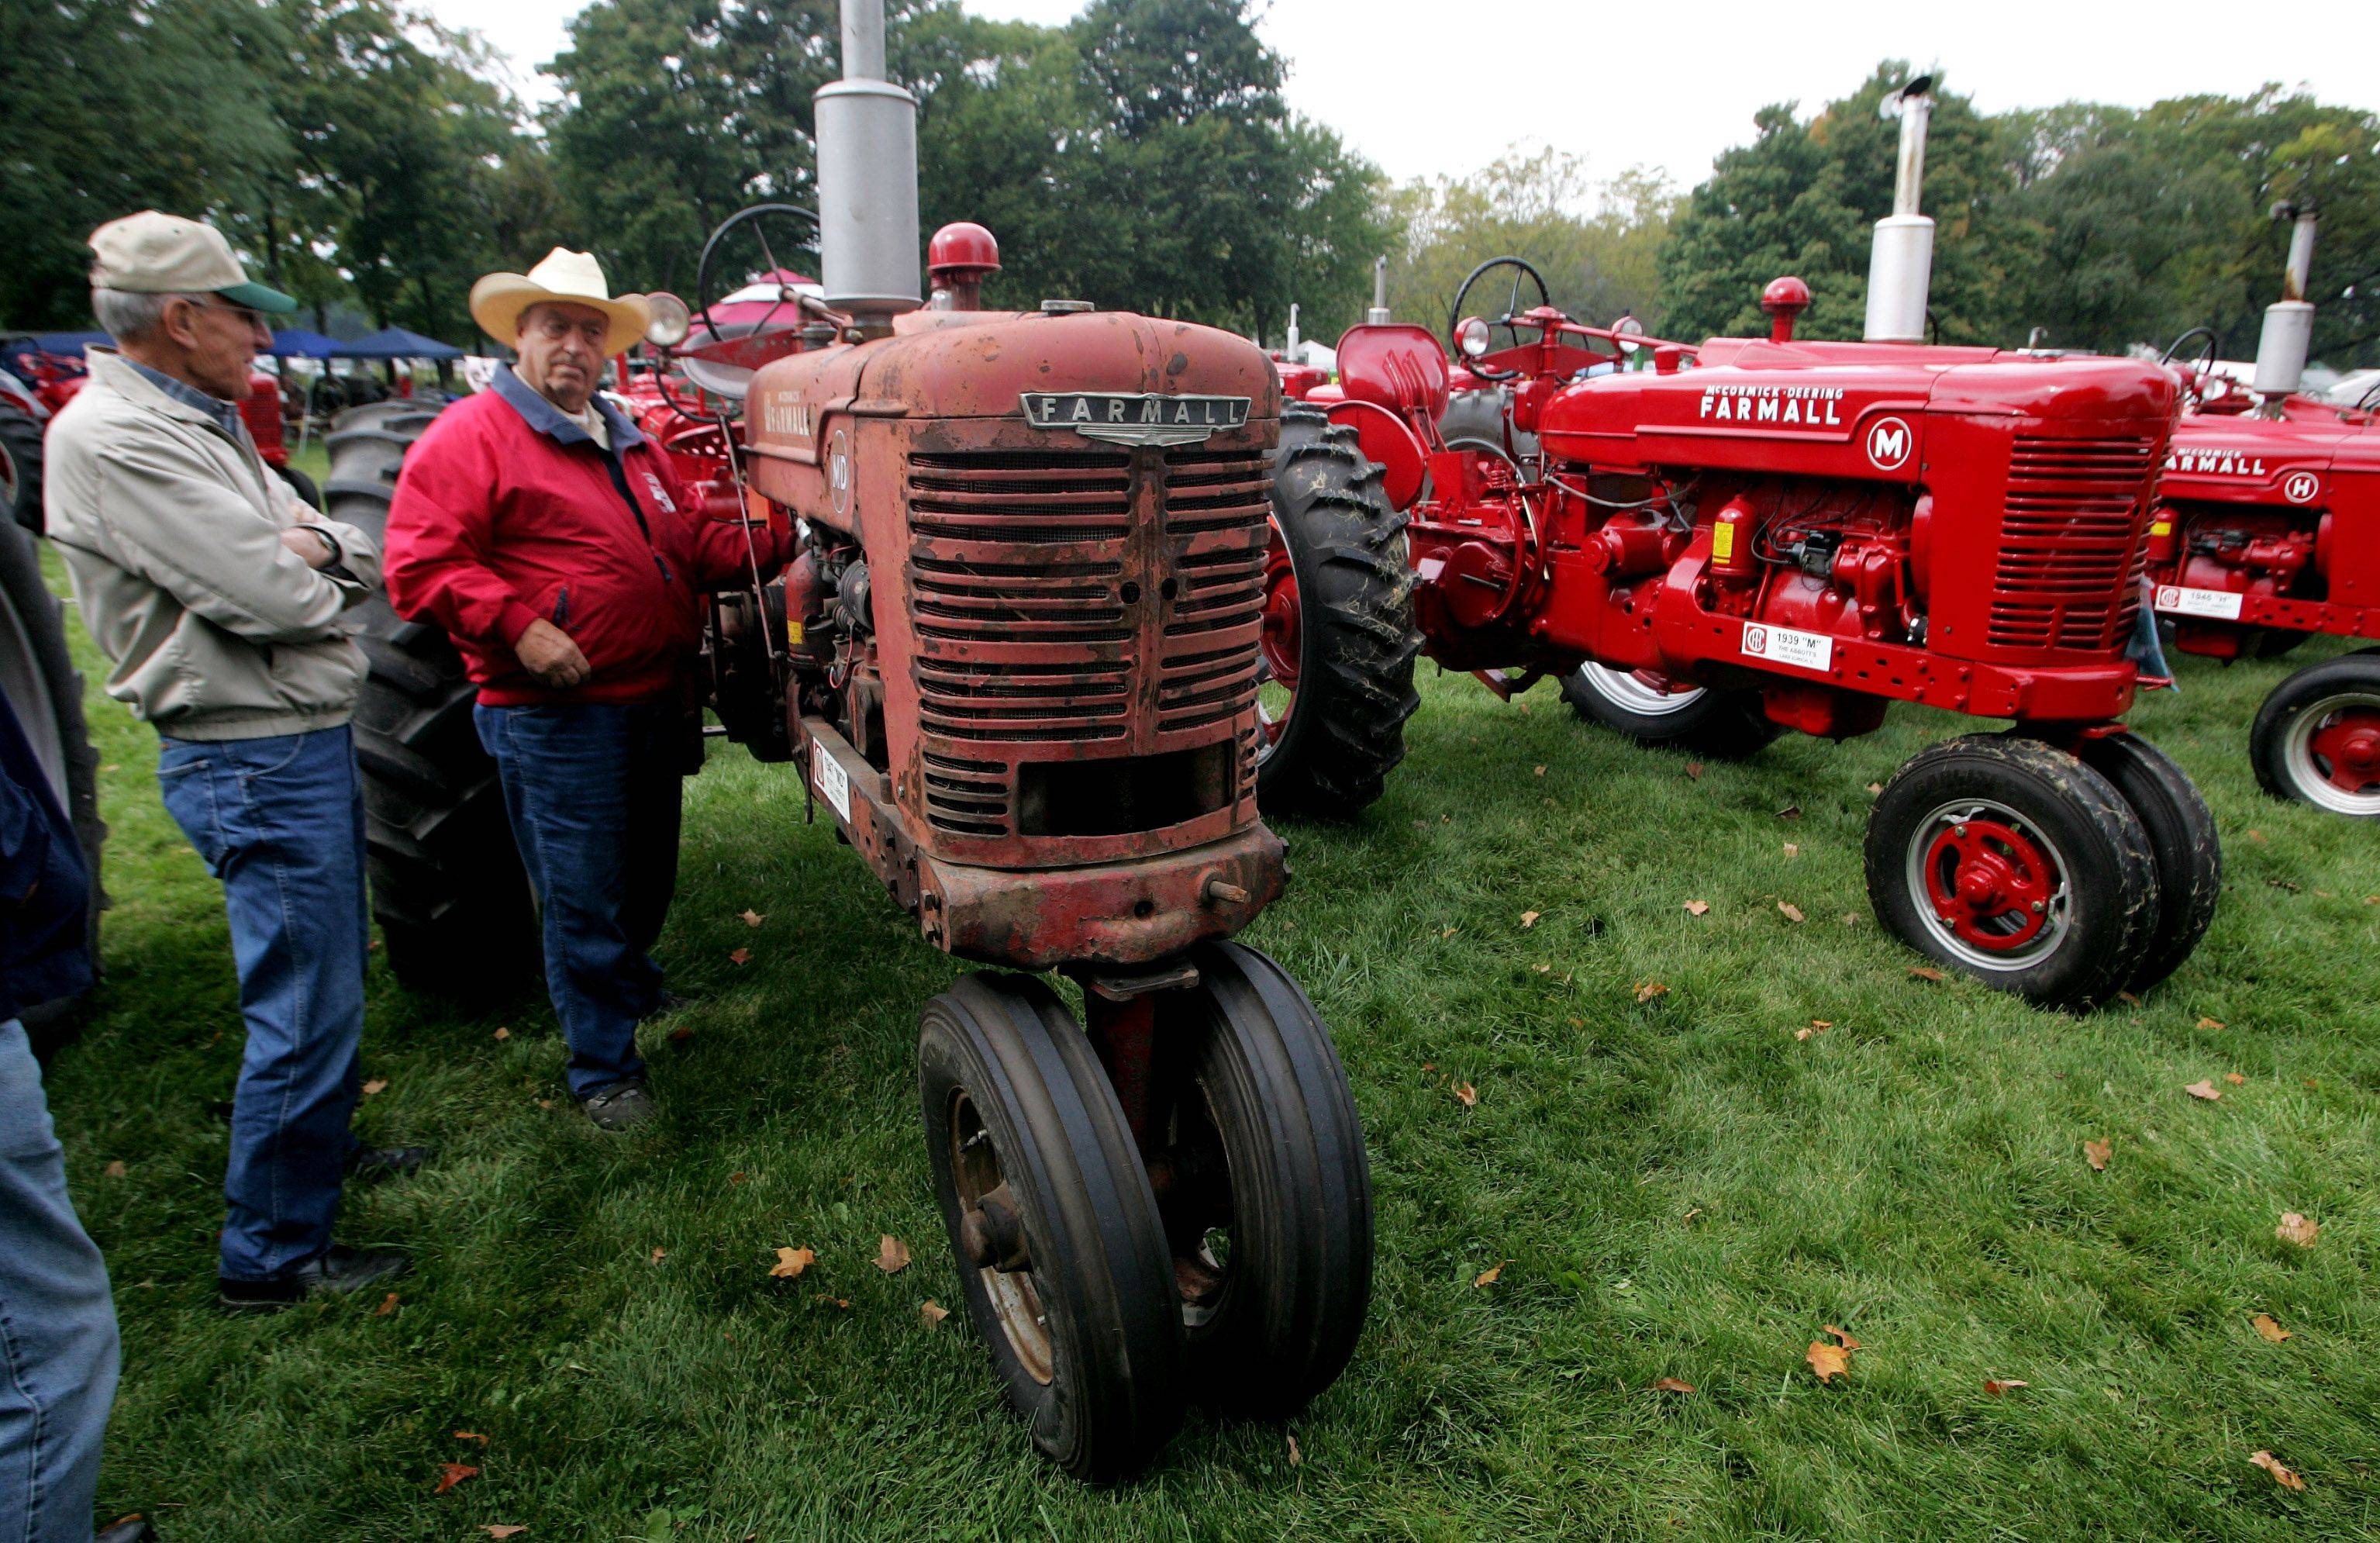 Terry Abbott, right, of Lake Zurich talks to Milan Duchaj of Hampshire about his 1947 McCormick Farmall �MD� during the Farm Heritage Festival Sunday at Lakewood Forest Preserve near Wauconda. The event celebrates farm life from the turn of the century to present day.